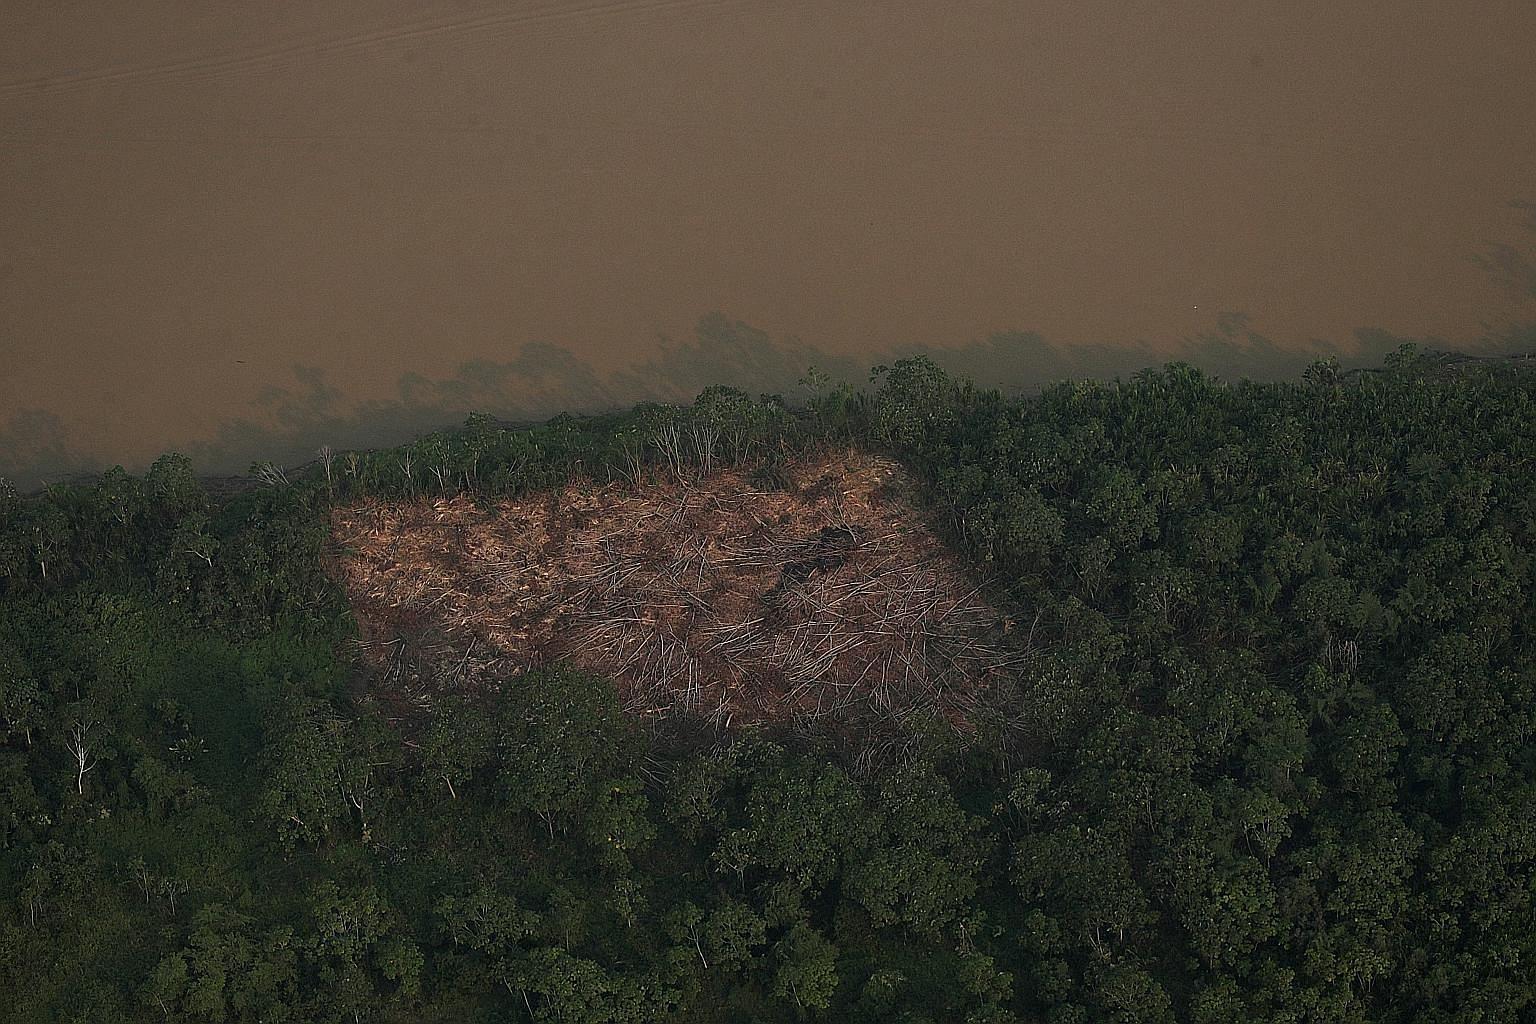 An aerial view of a deforested plot of the Amazon near Porto Velho in Brazil's Rondonia state on Wednesday. According to reports, the Amazon has experienced a record number of fires this year - the result of both drier conditions and intentional burn